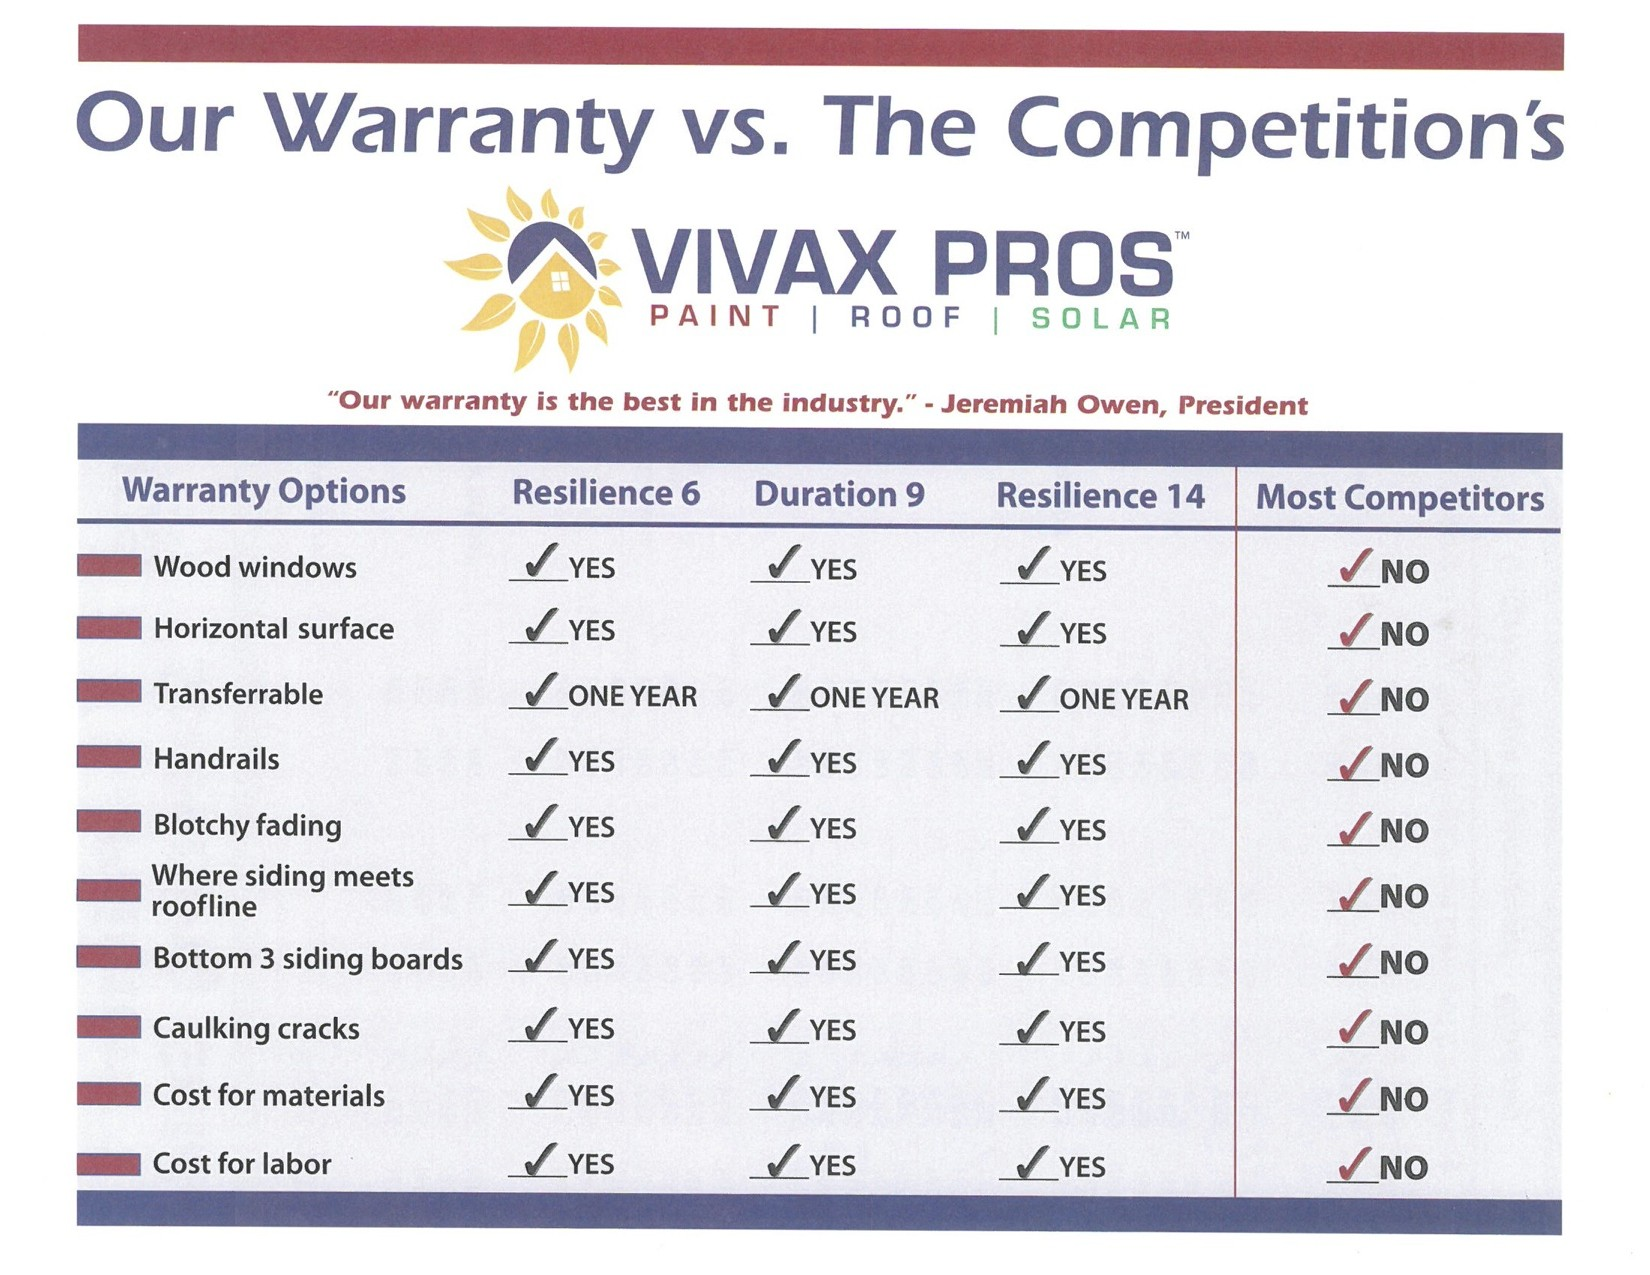 Our Warranty vs Competitors chart